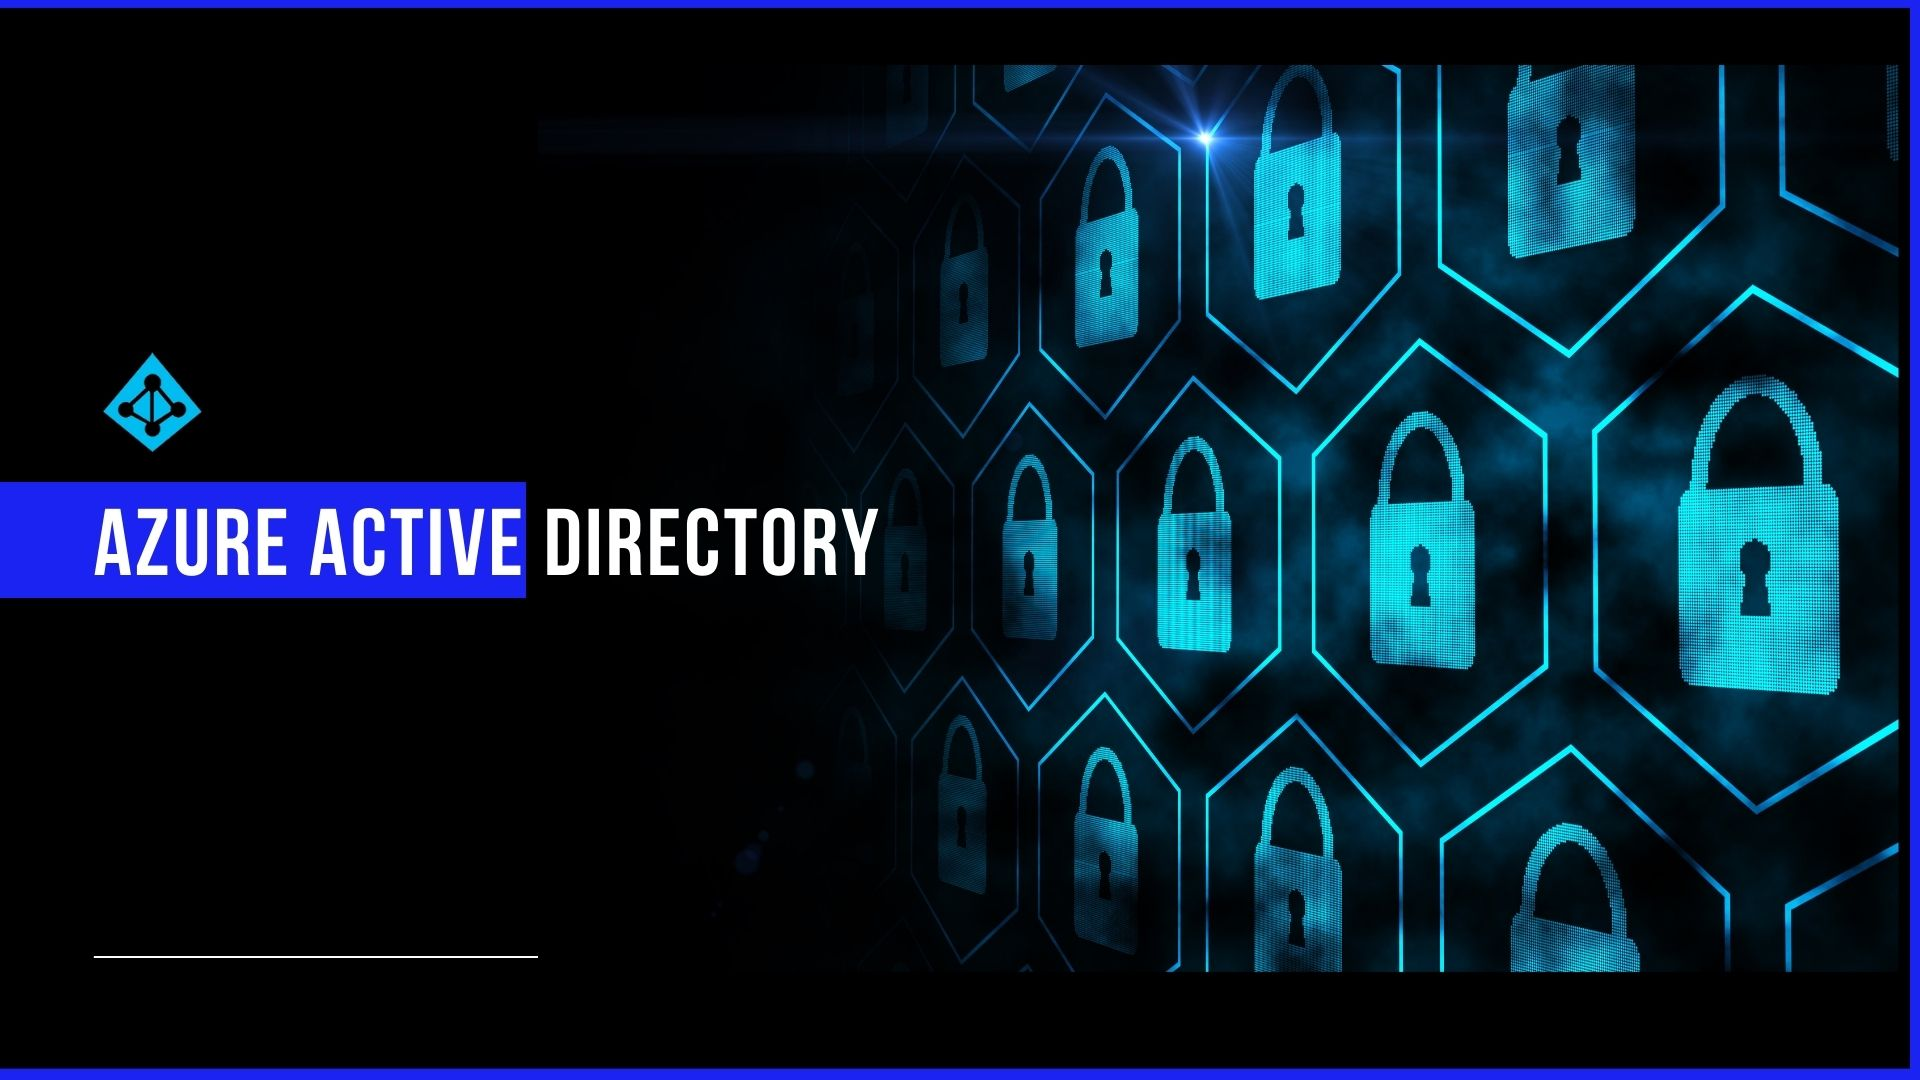 Azure Active Directory (AD) – Cloud-Based Identity & Access Management service - thumb image